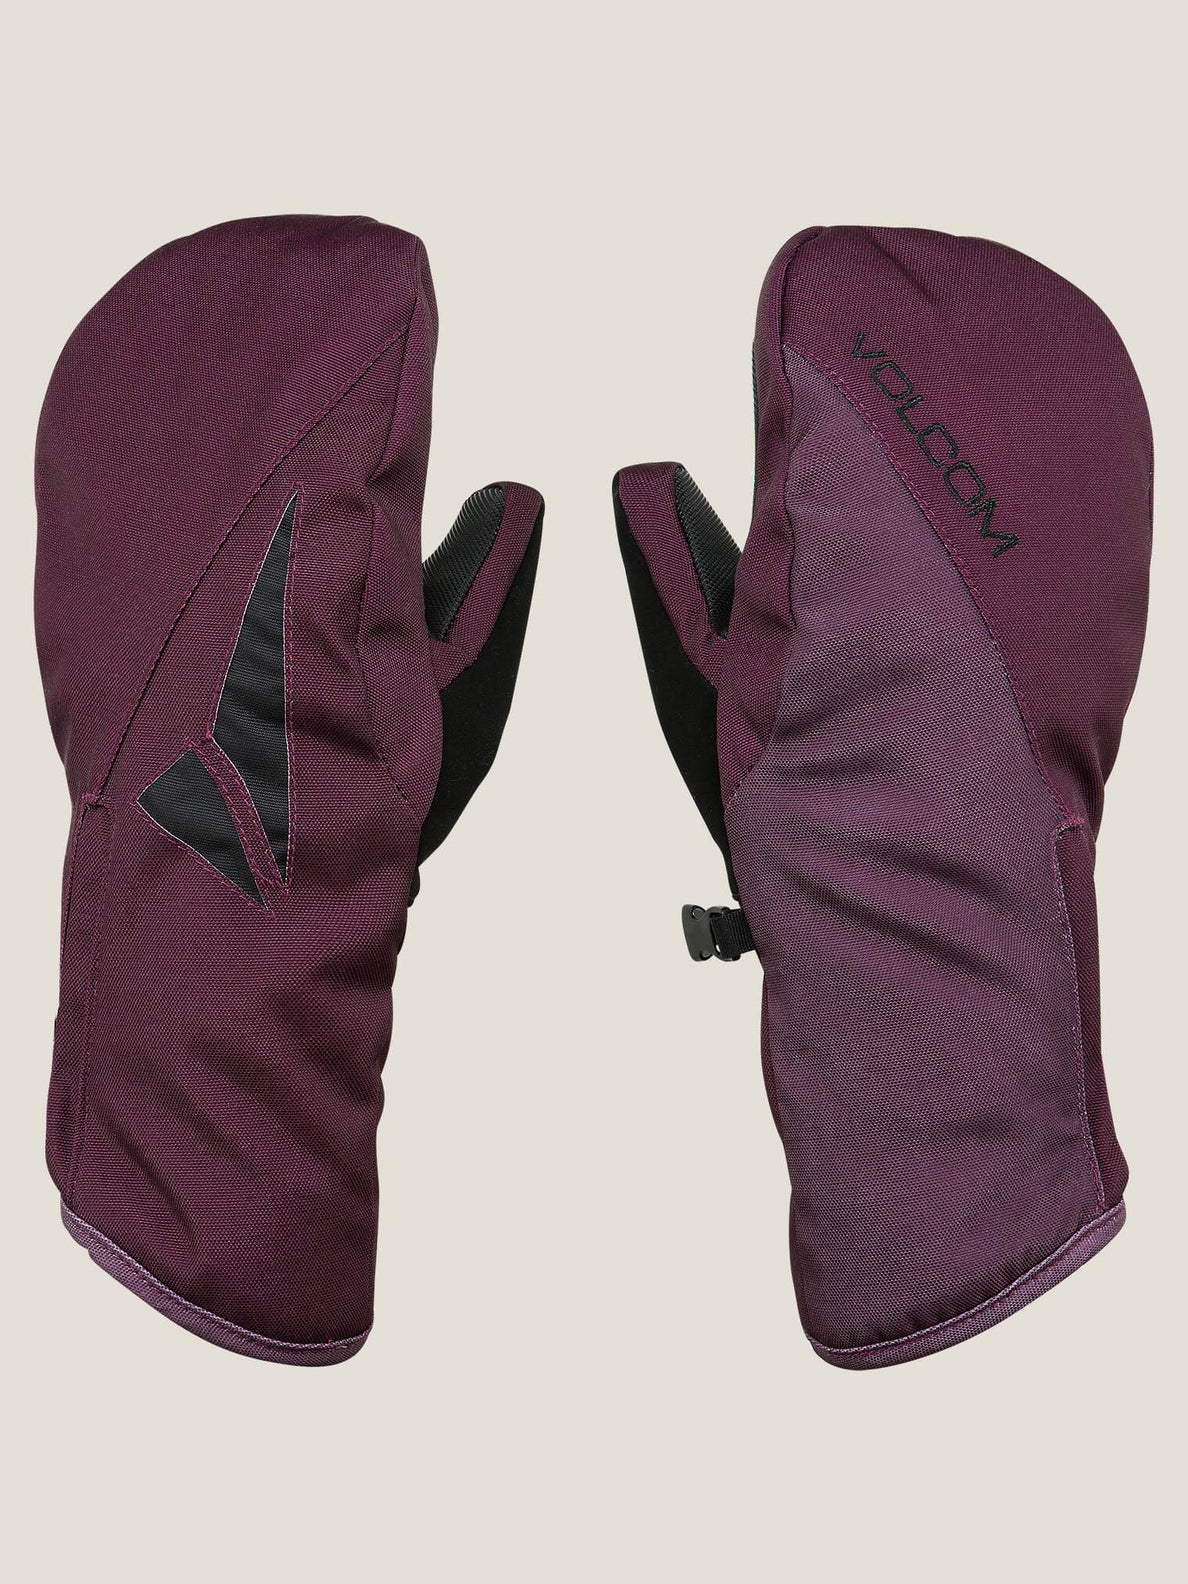 Bistro Mitt In Winter Orchid, Front View